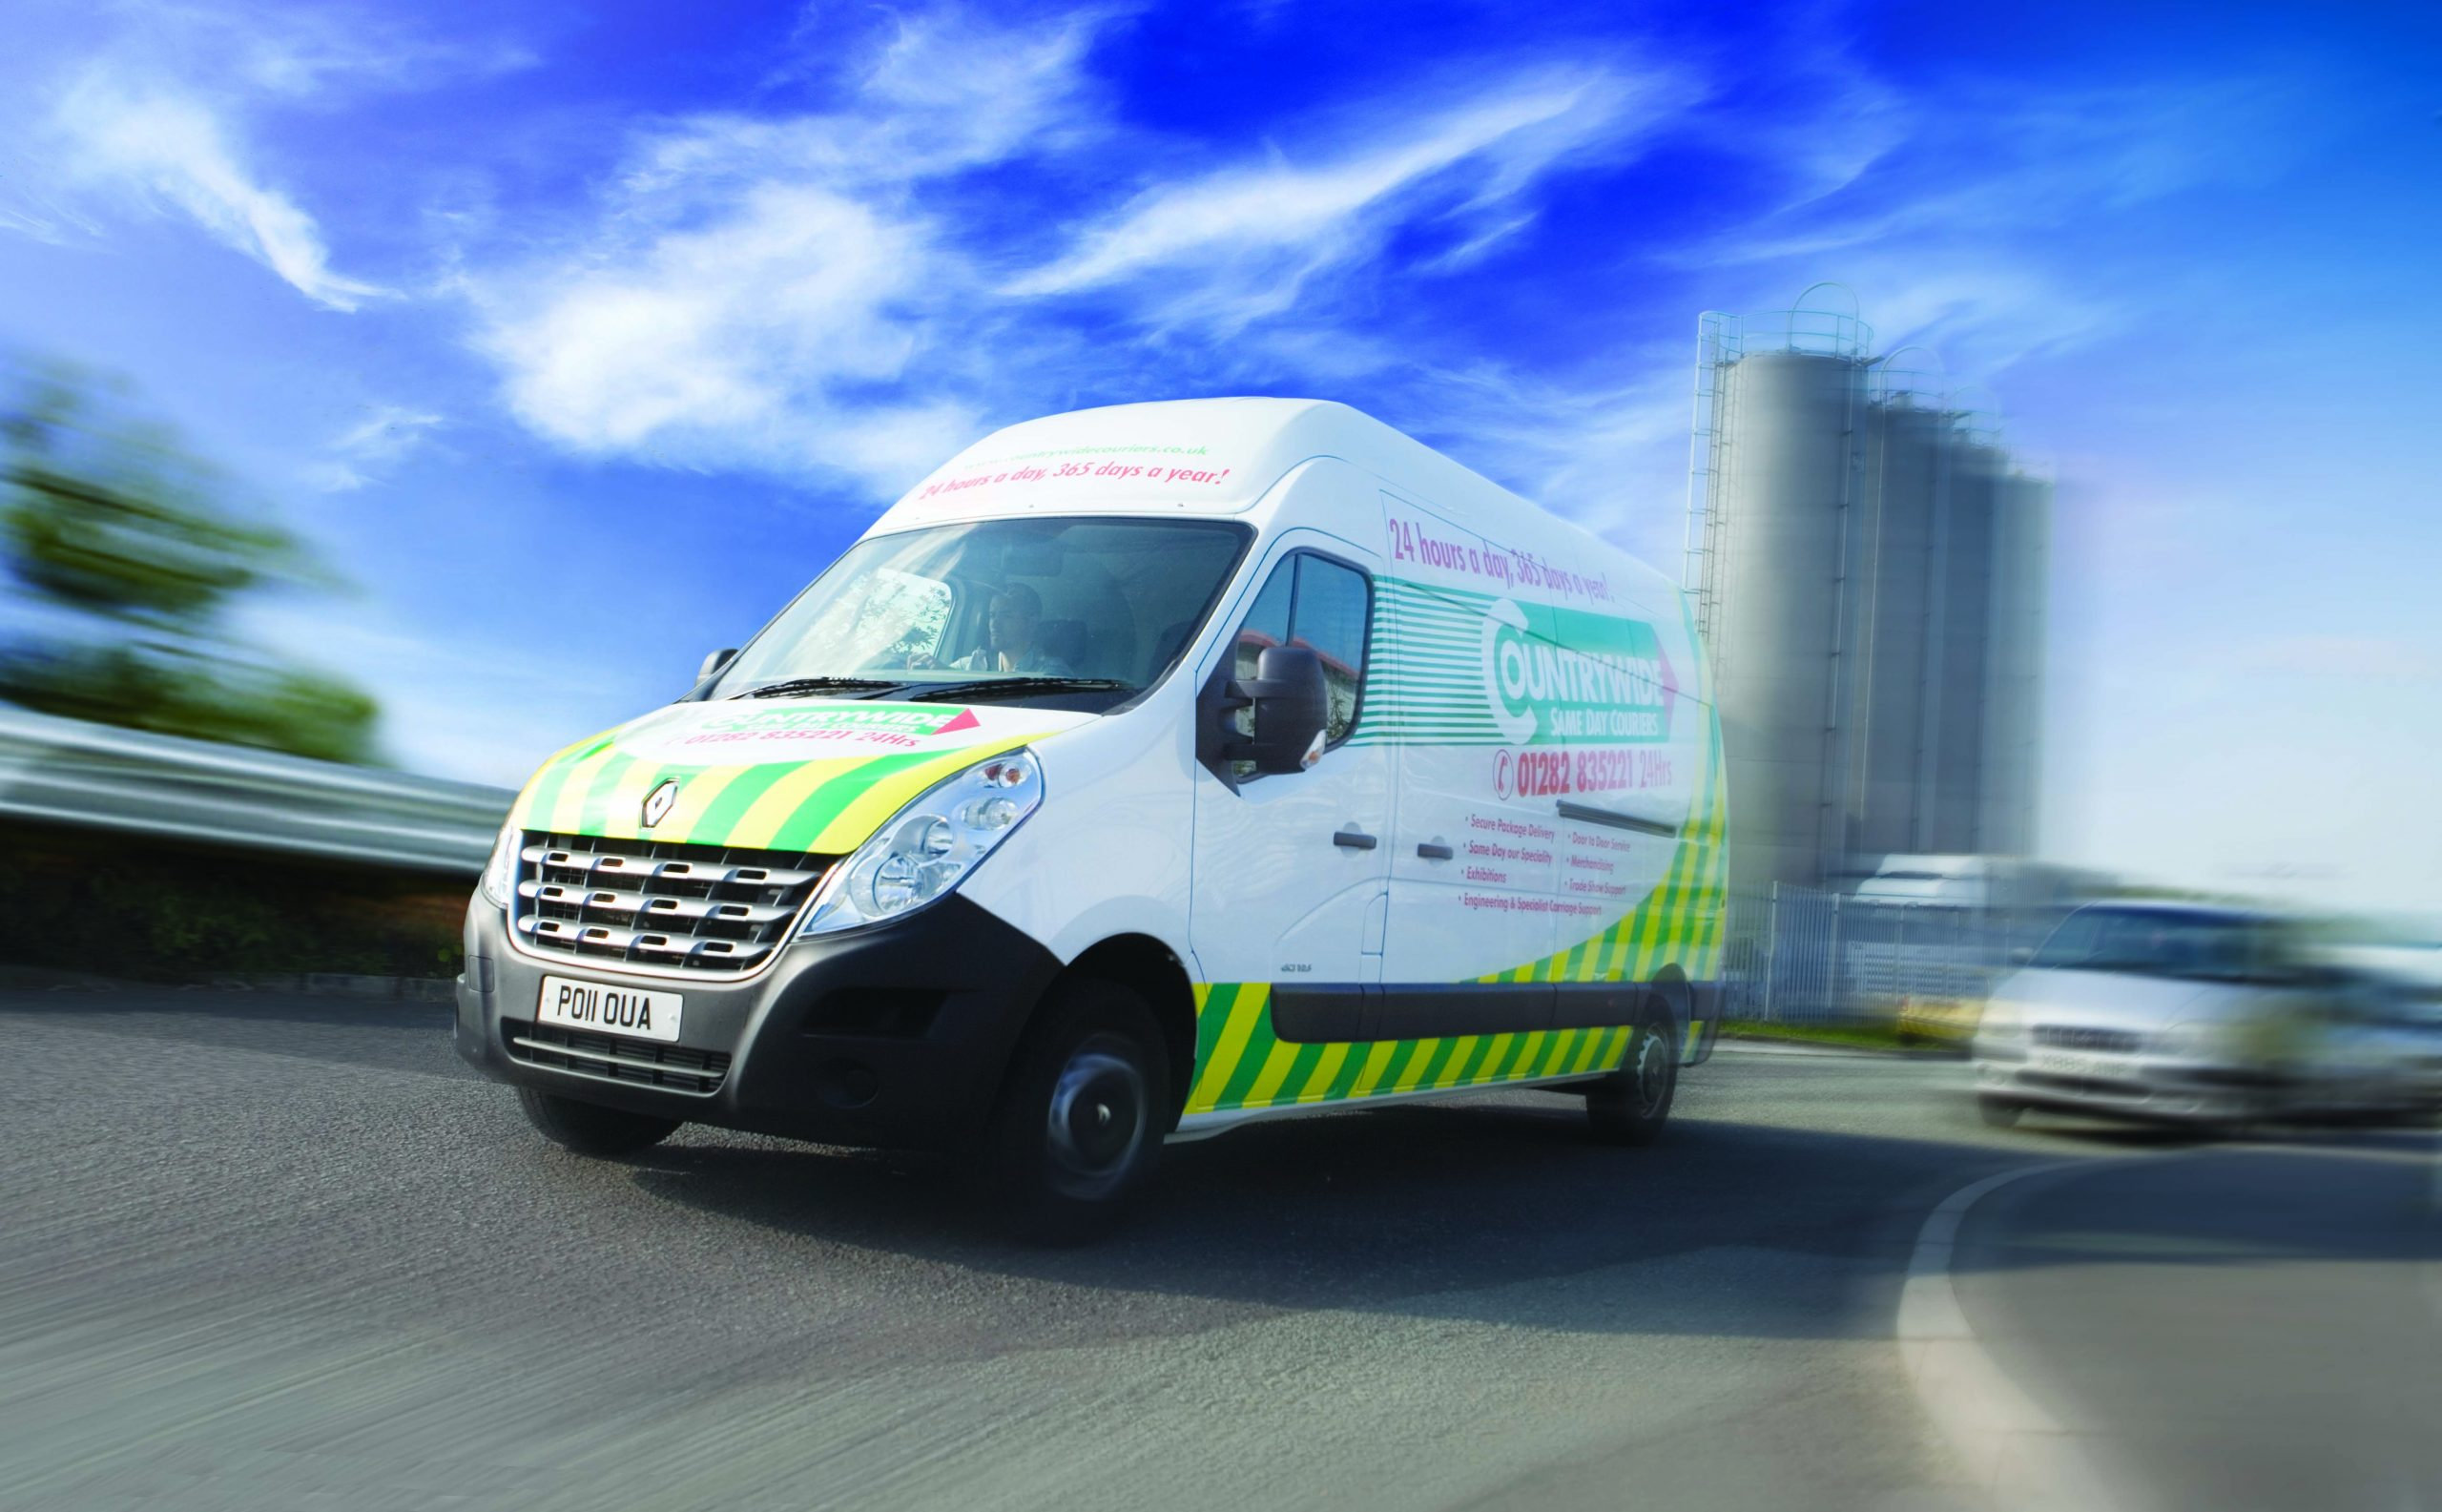 Countrywide Couriers Van